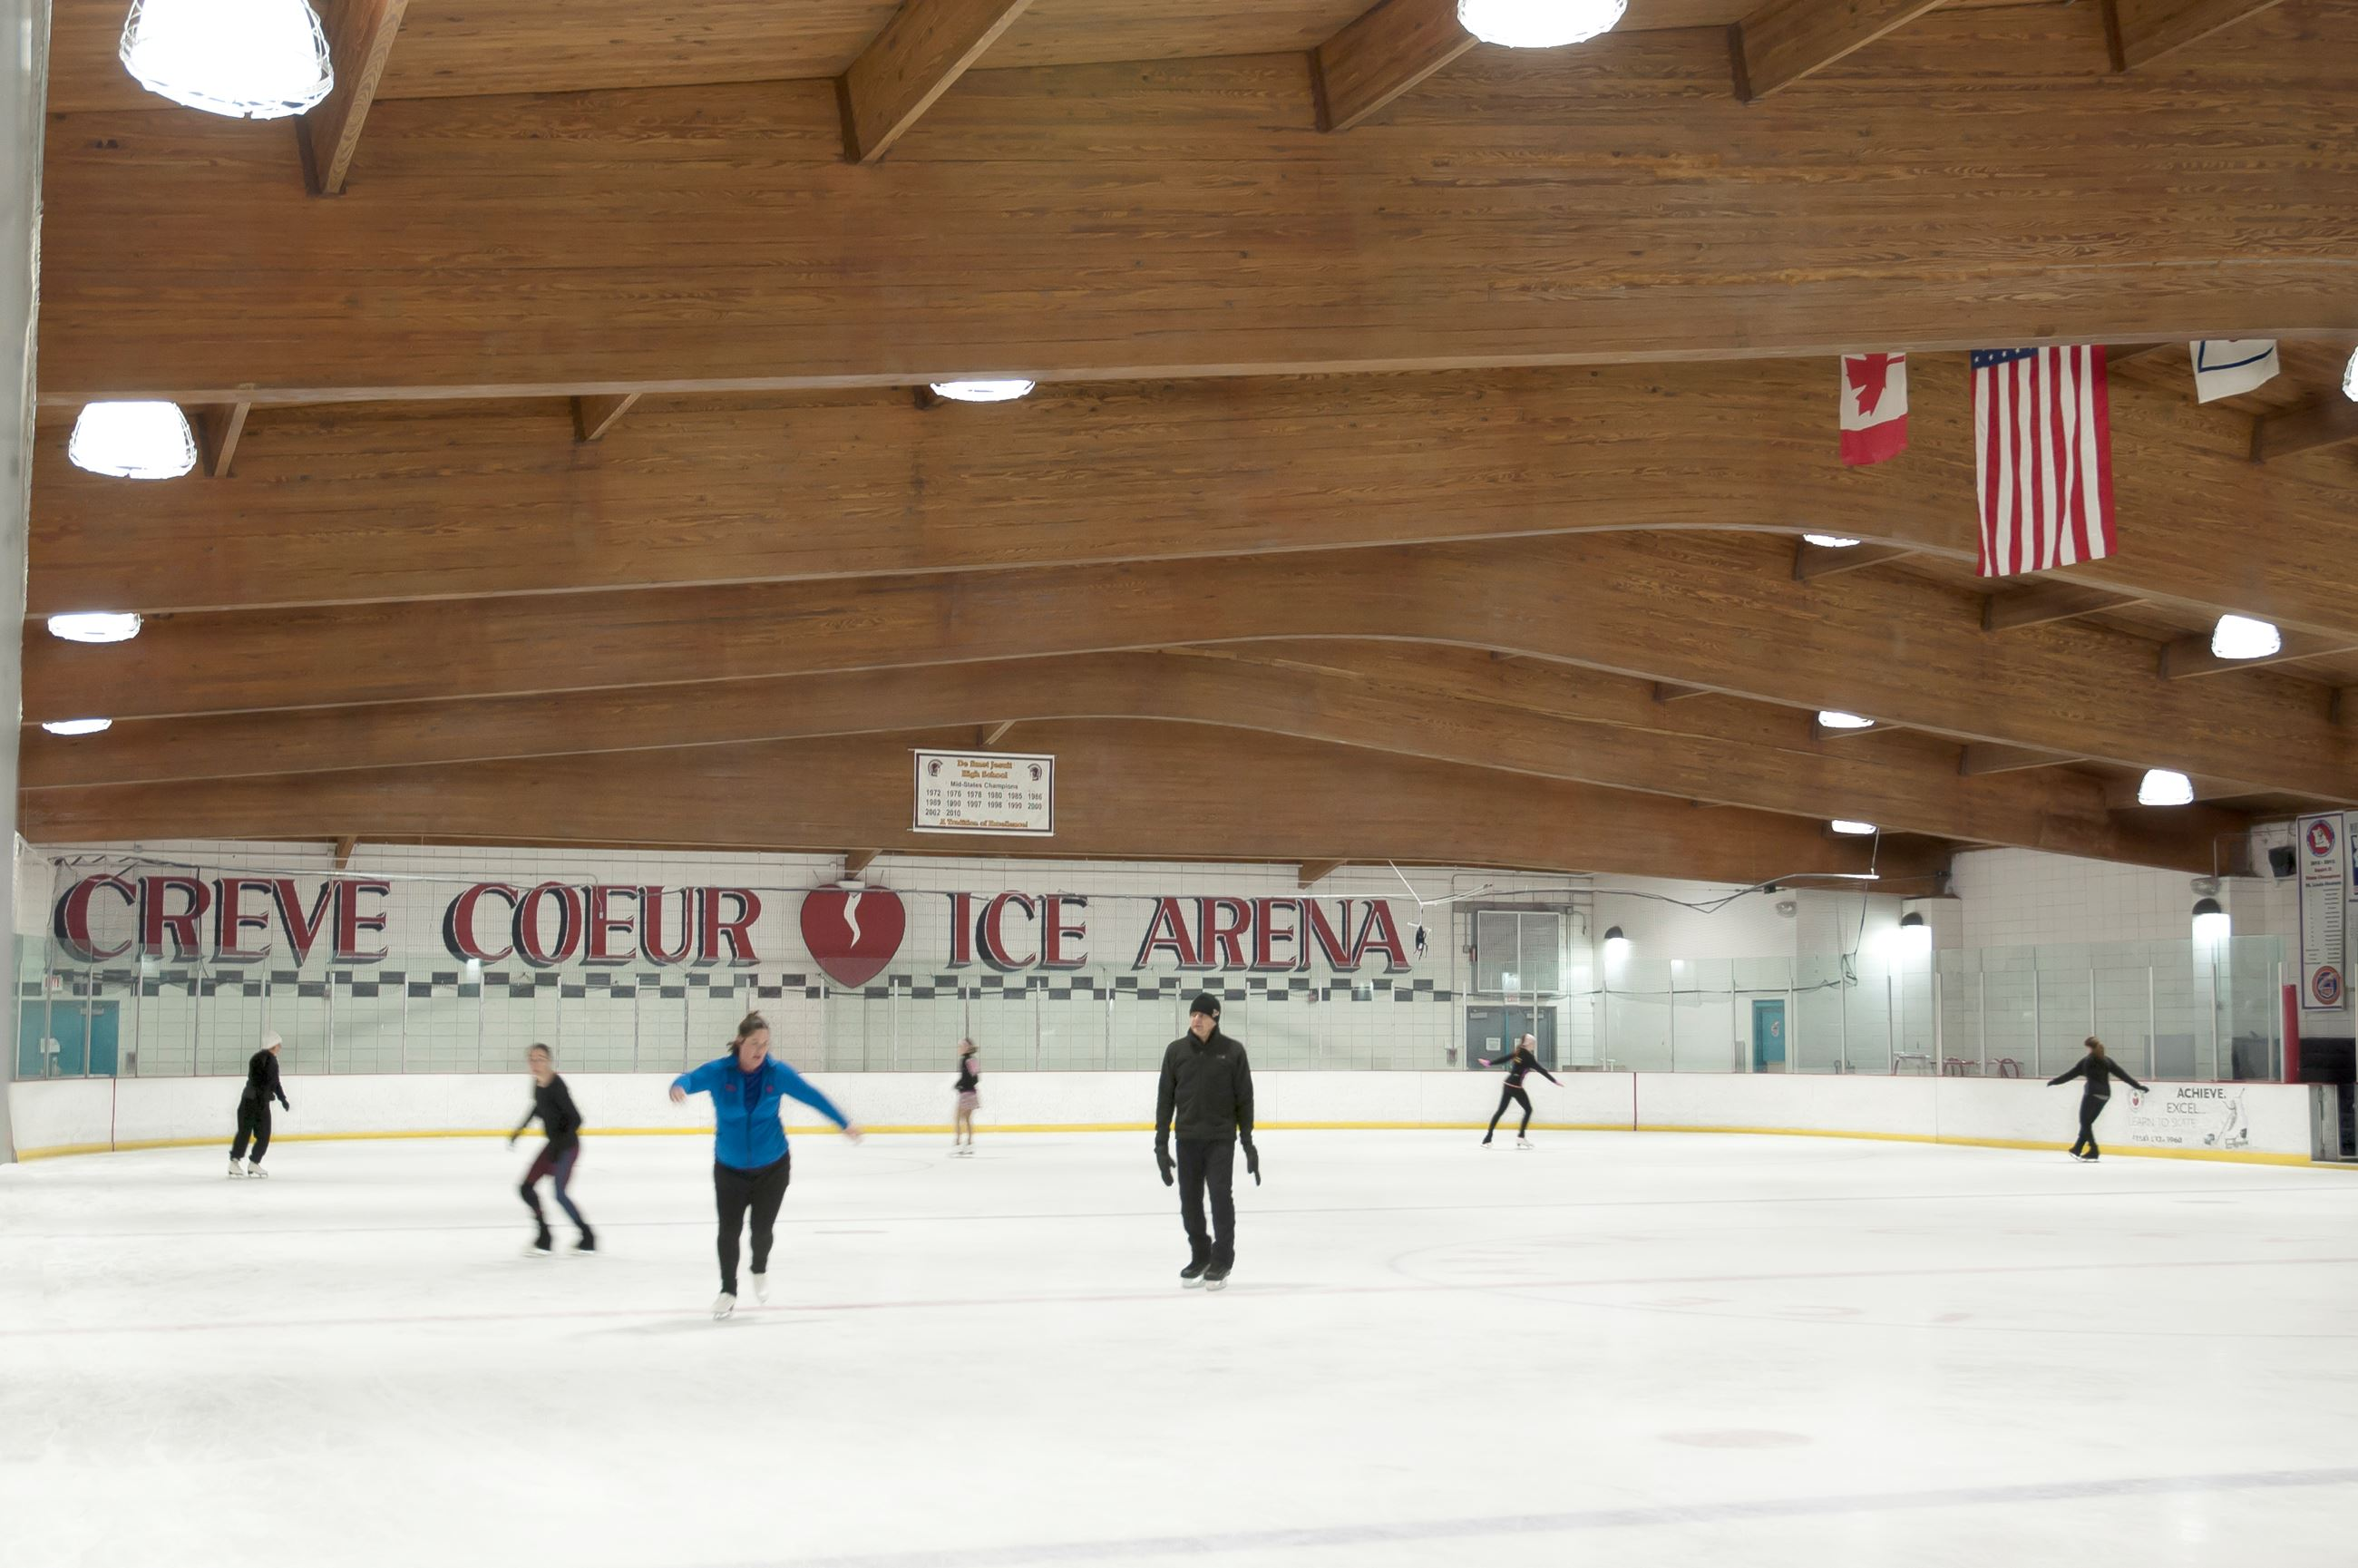 Ice skaters at the Creve Coeur Ice Arena